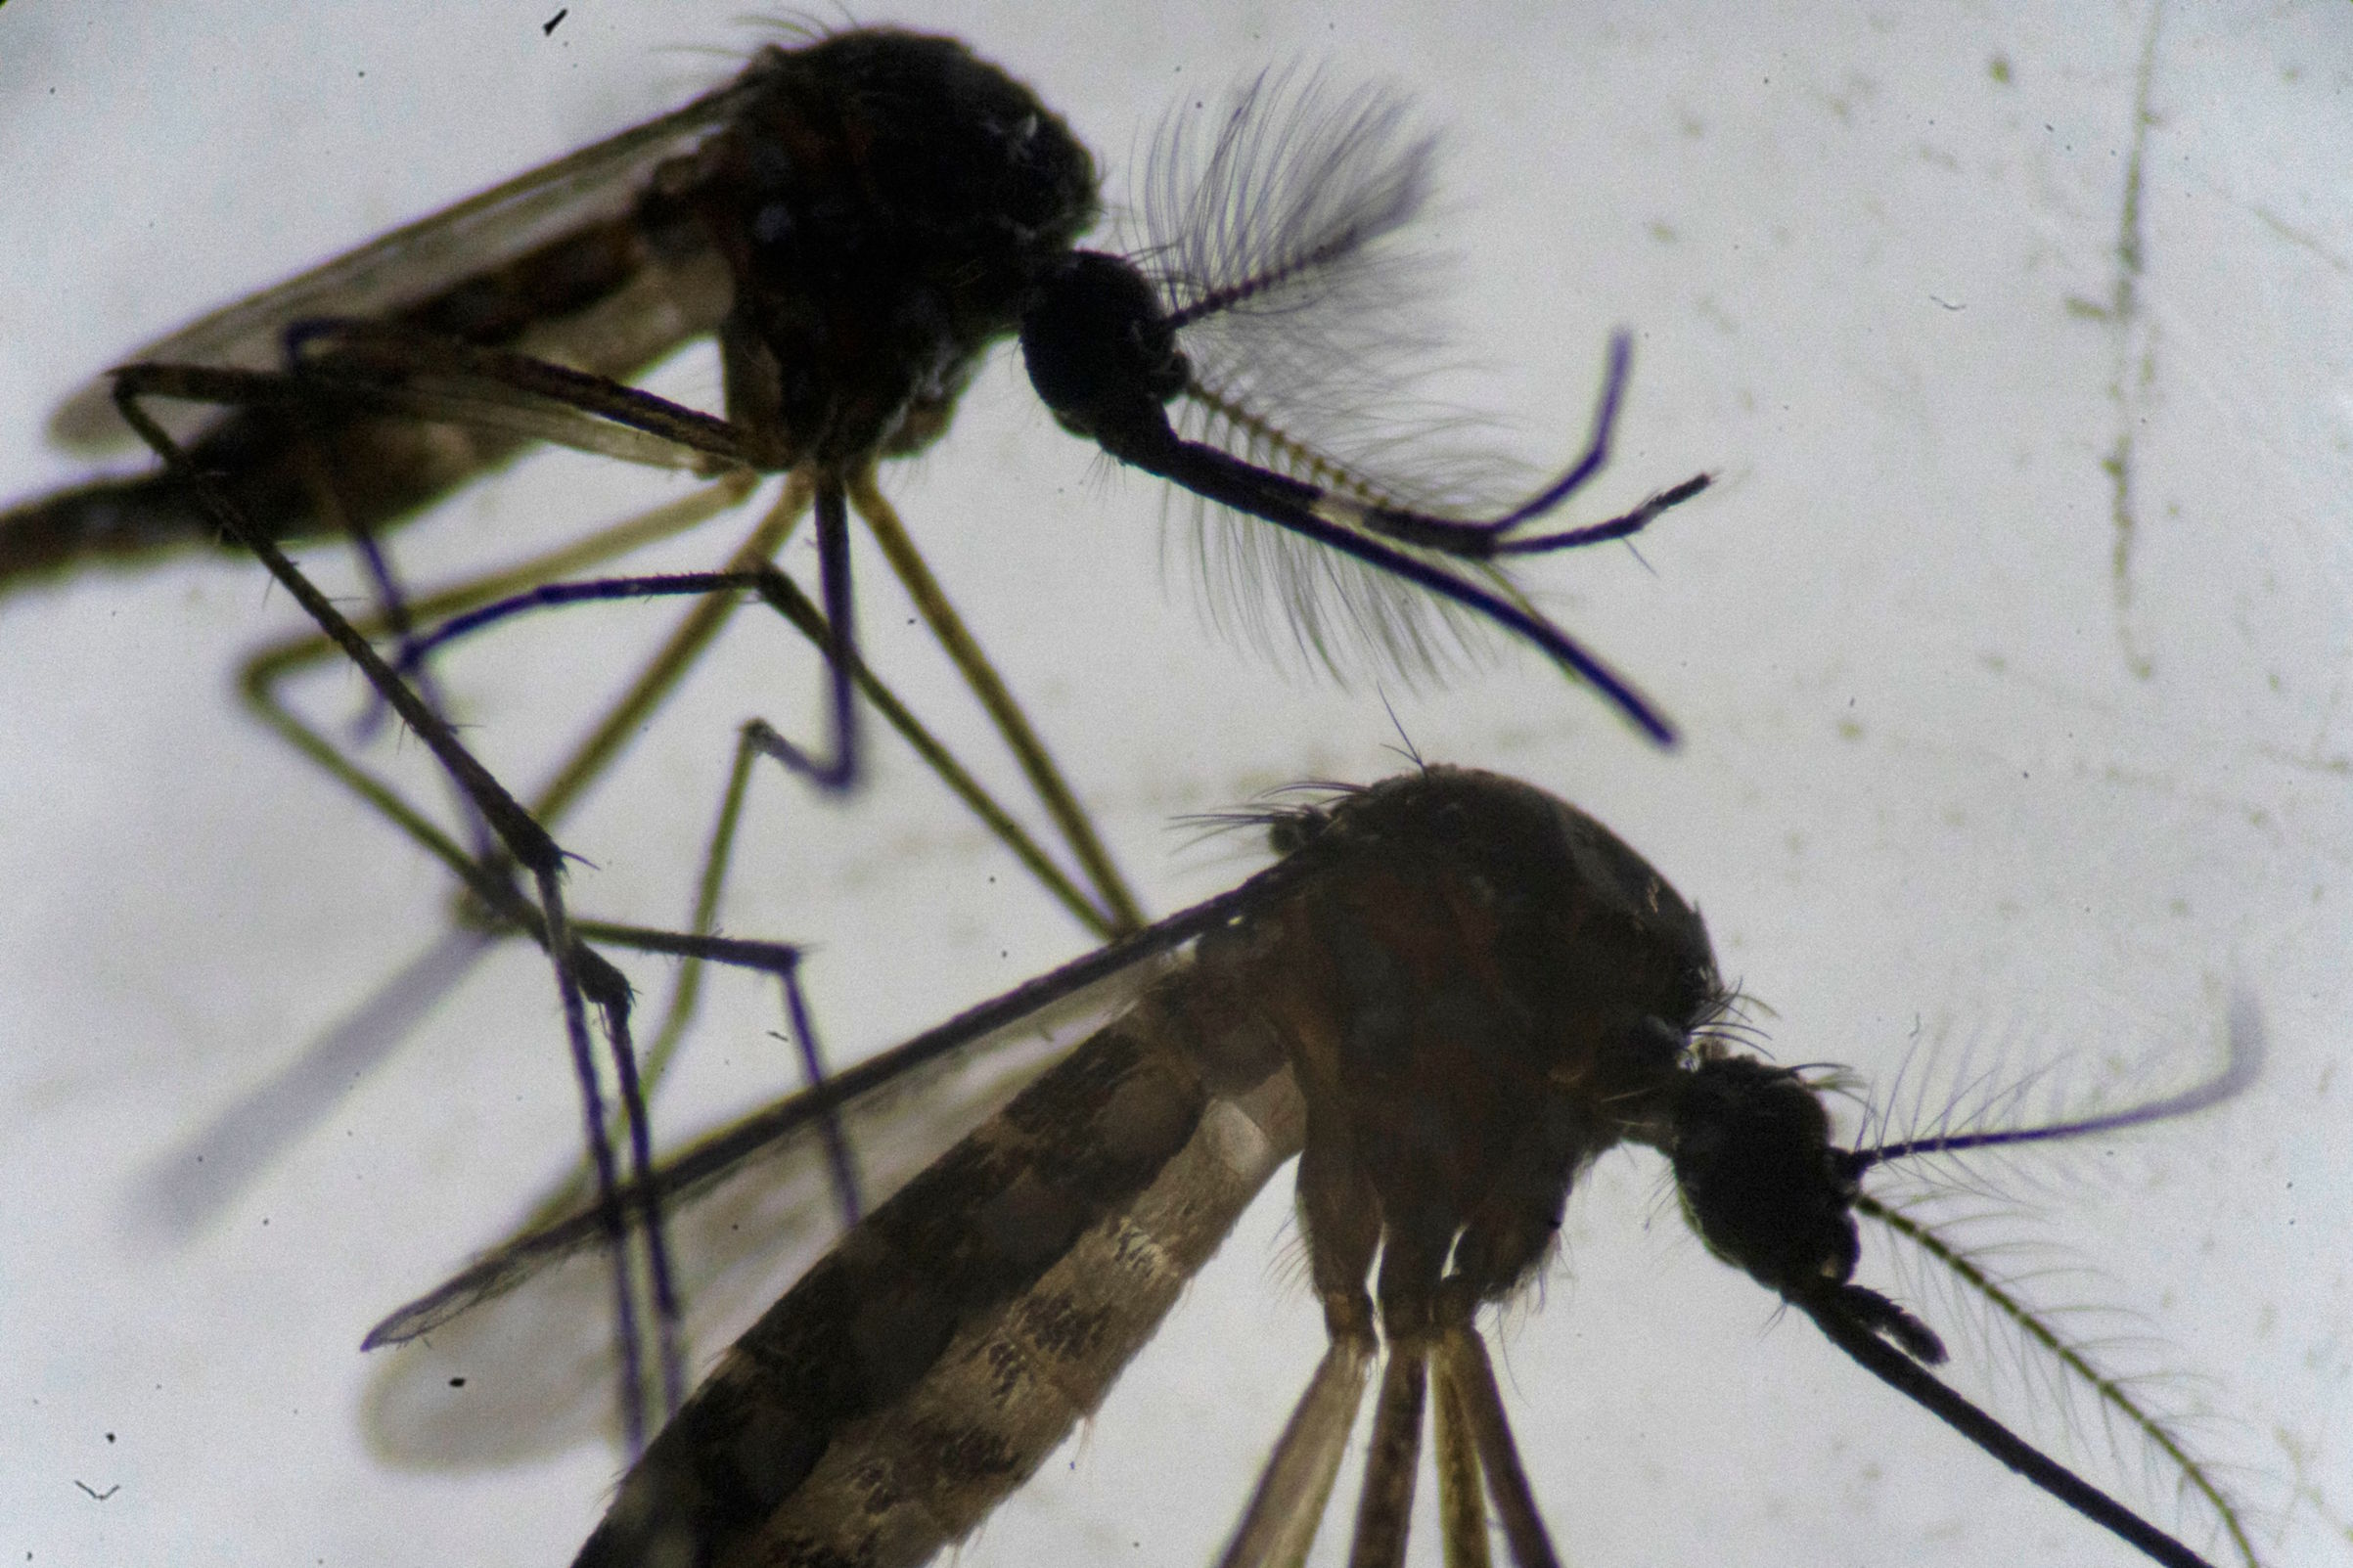 A male (top) and a female (bottom) Aedes aegypti mosquito are seen through a microscope at the Oswaldo Cruz Foundation laboratory in Rio de Janeiro on Aug. 14, 2019.